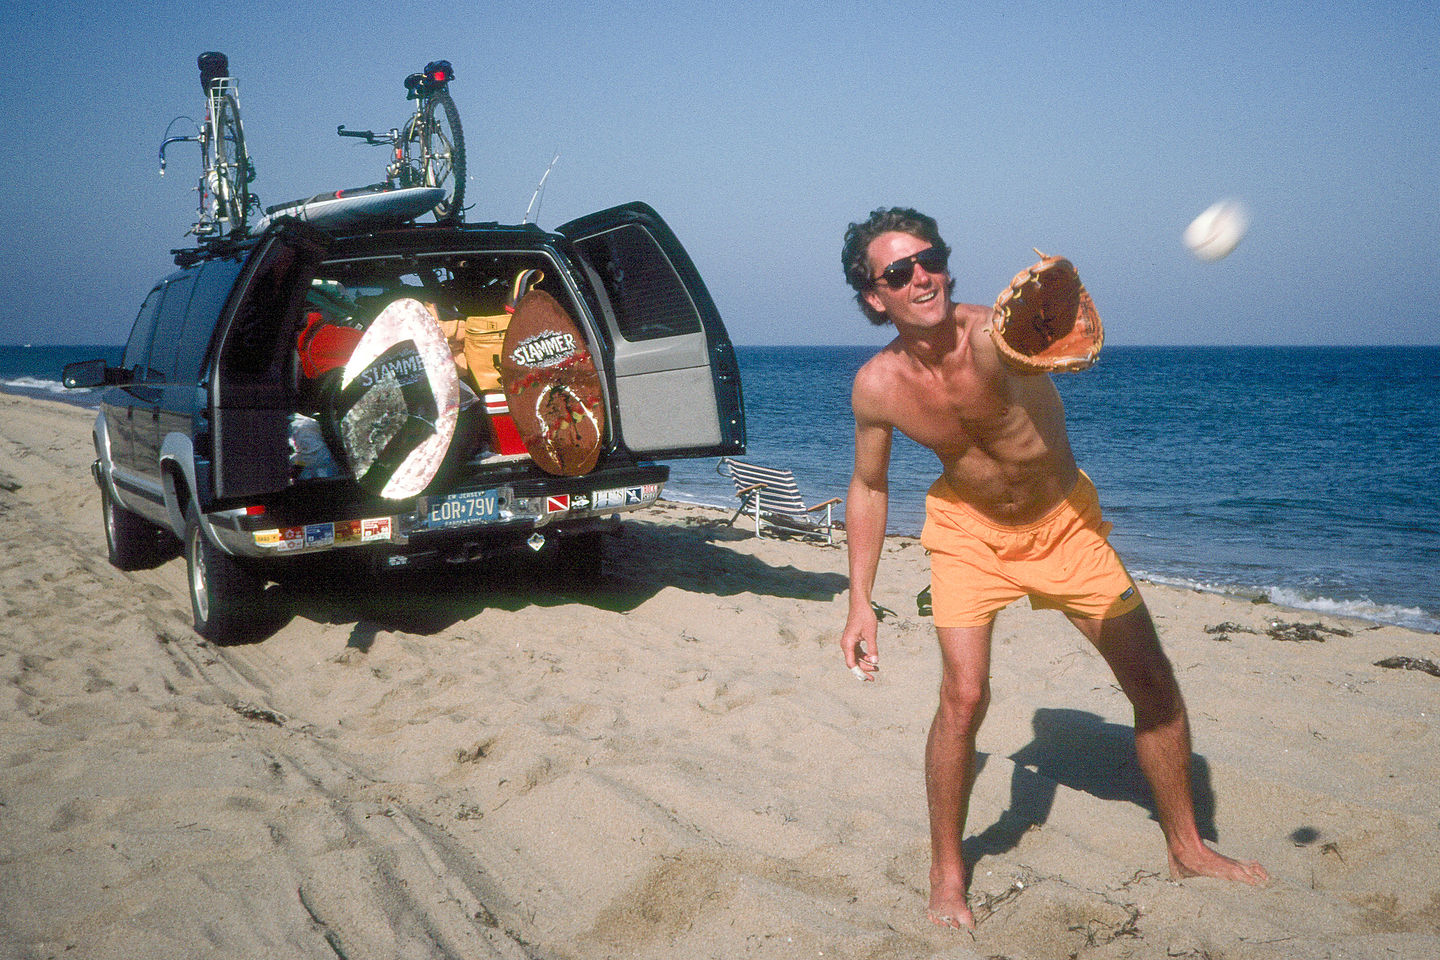 Herb playing catch on beach